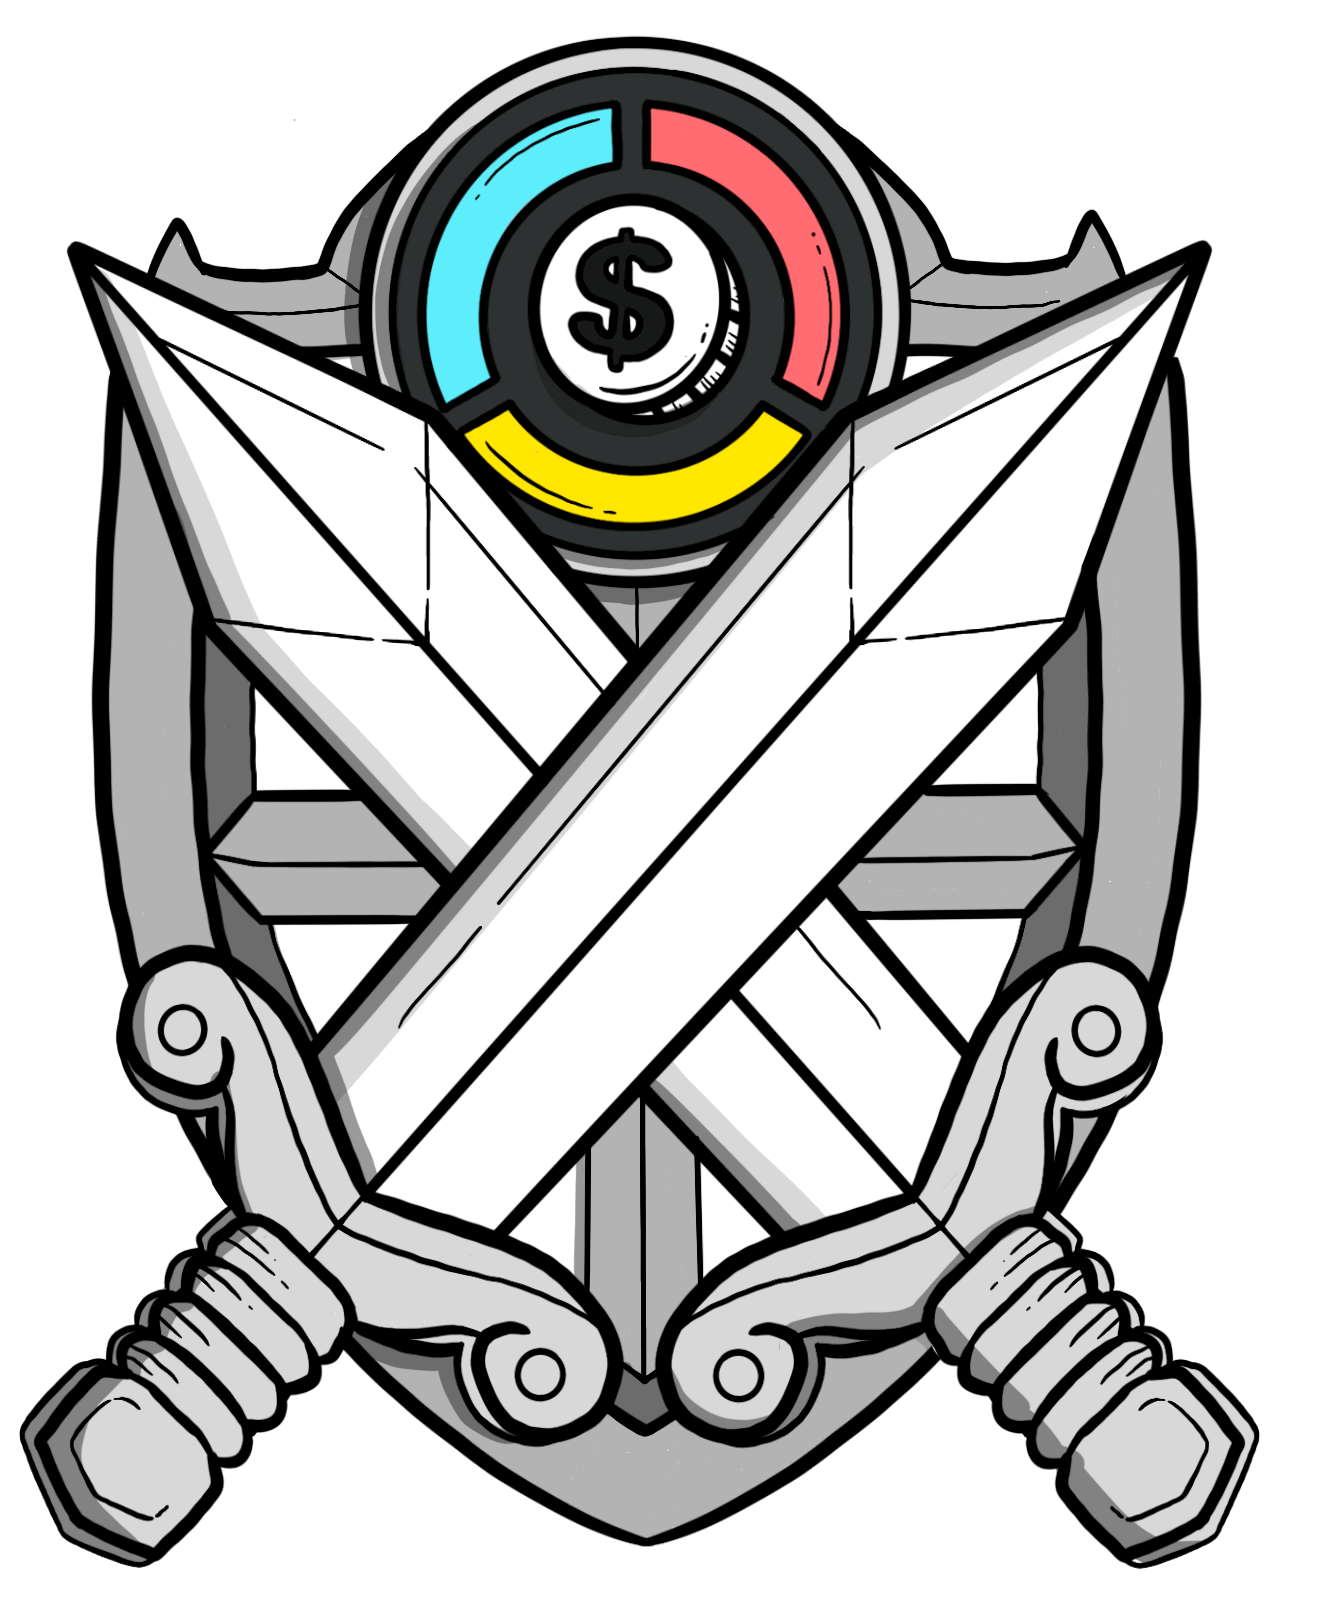 Badge with two swords crossing each other, Cash Coach logo on top.